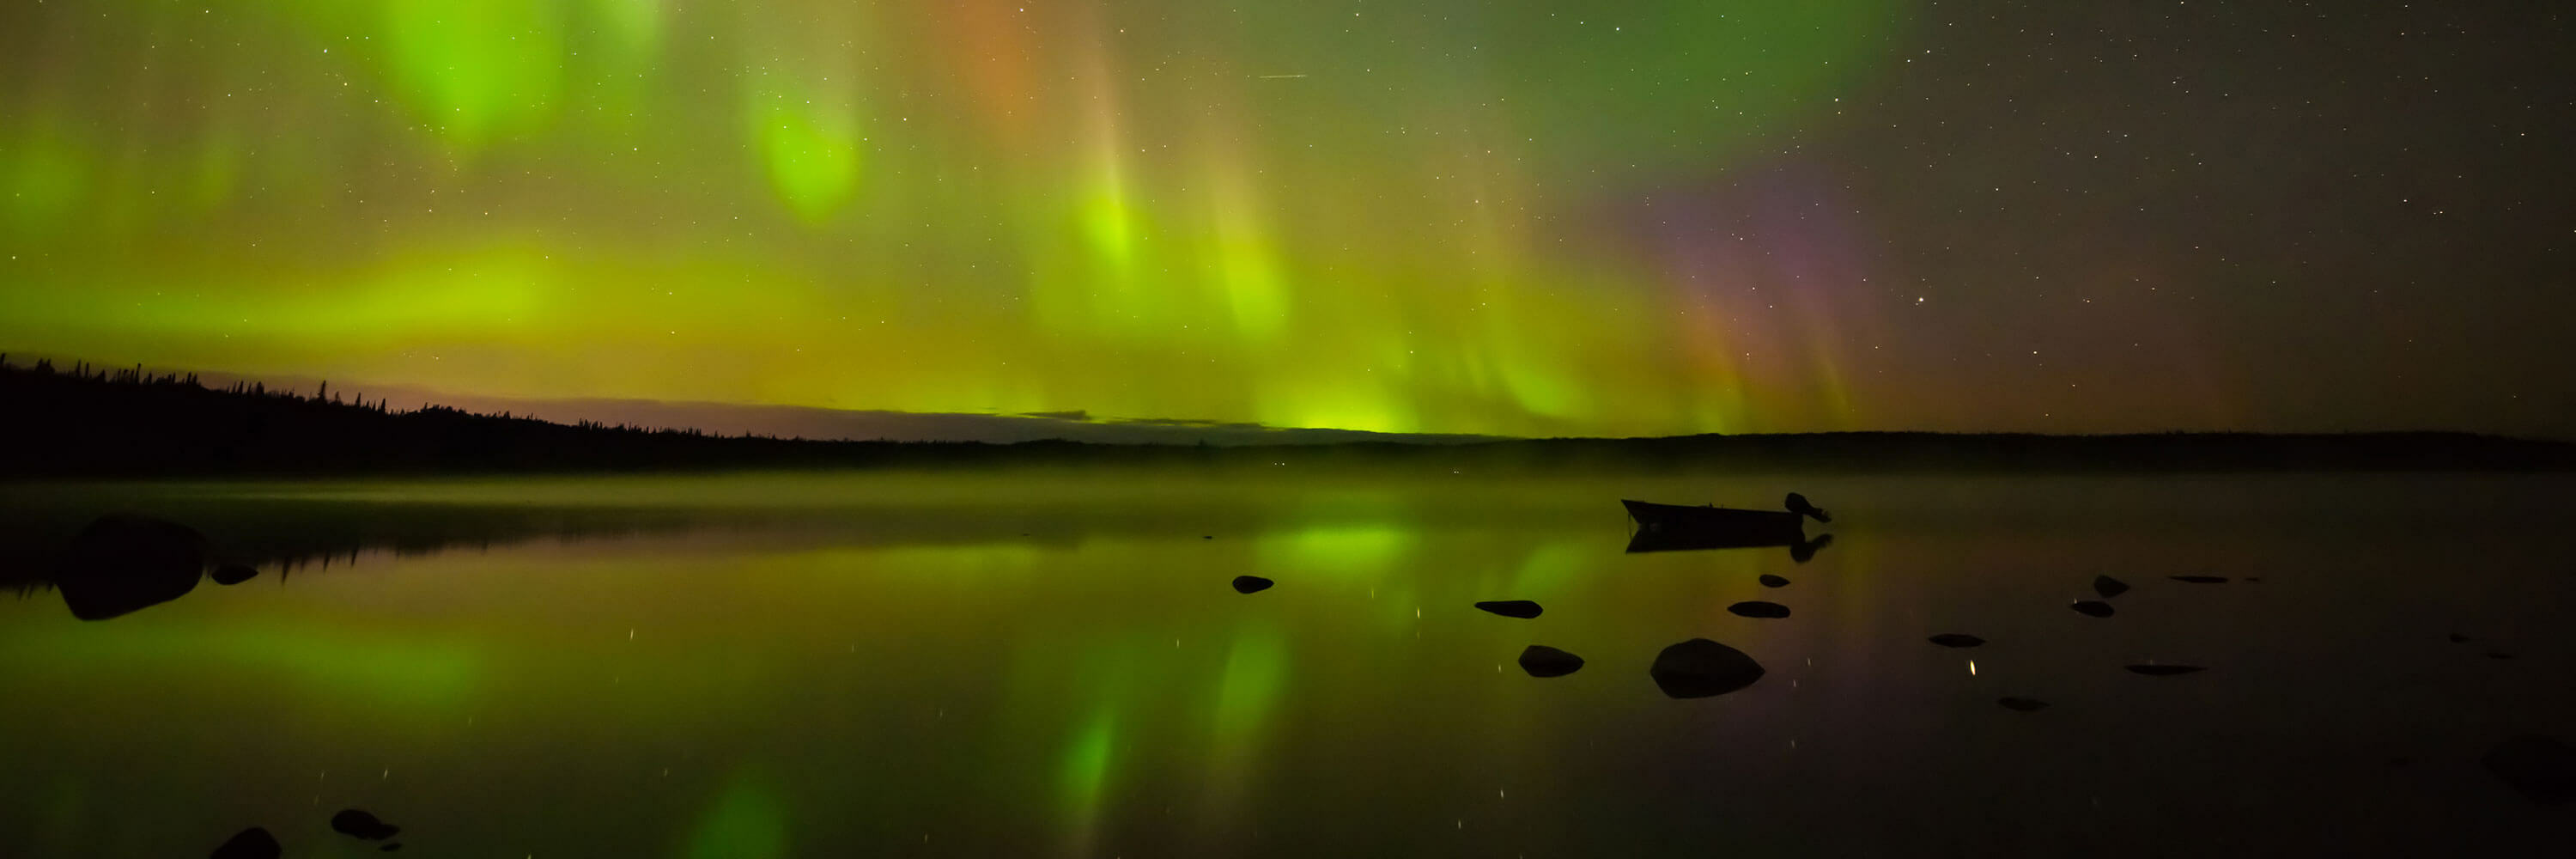 Colorful green aurora over land, water, and boat